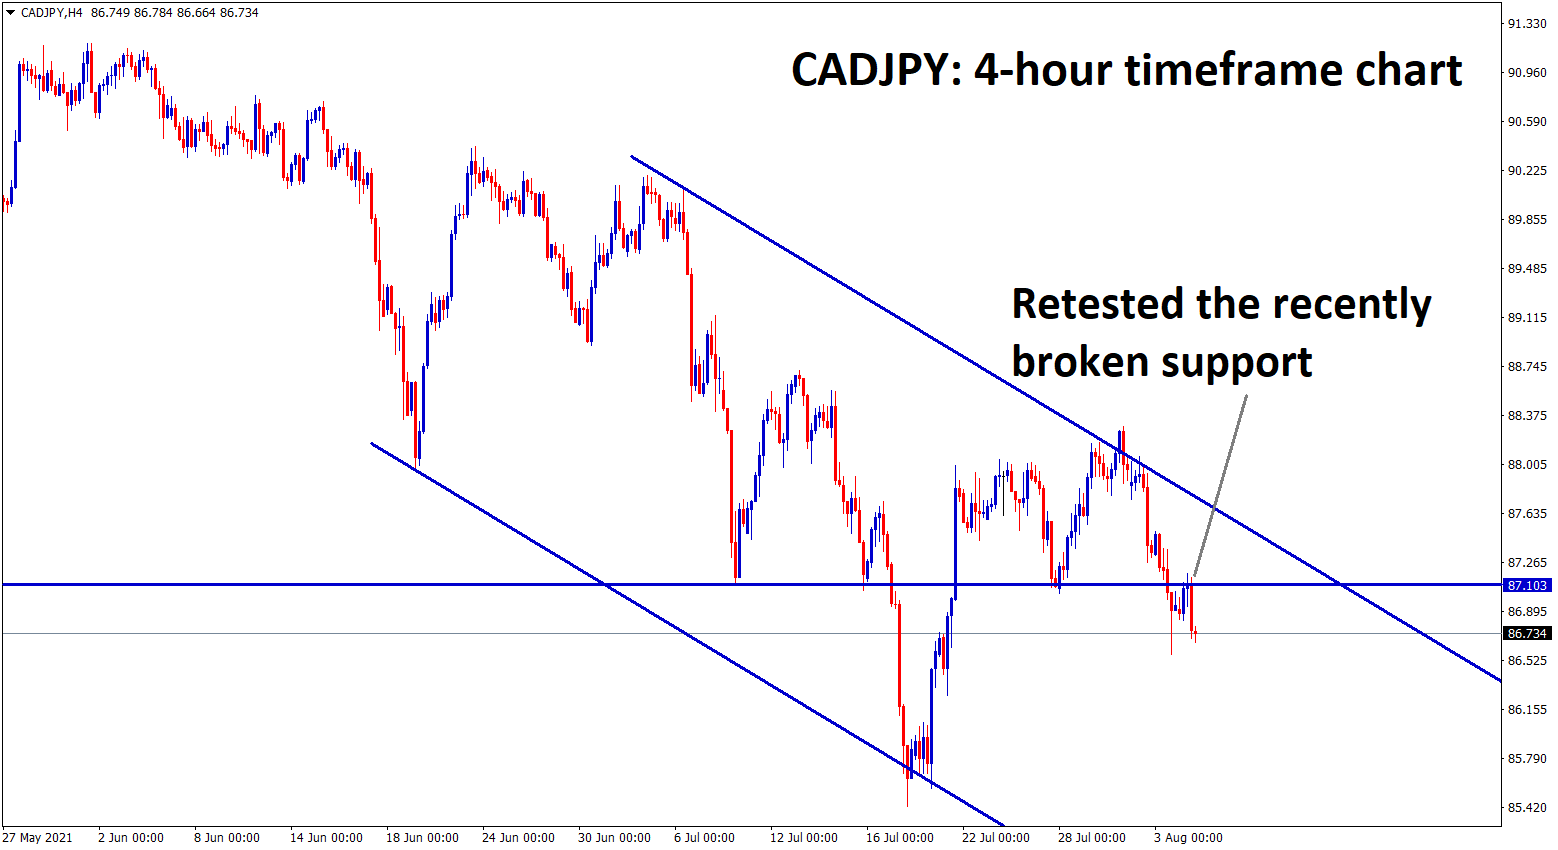 CADJPY has retested the recently broken support